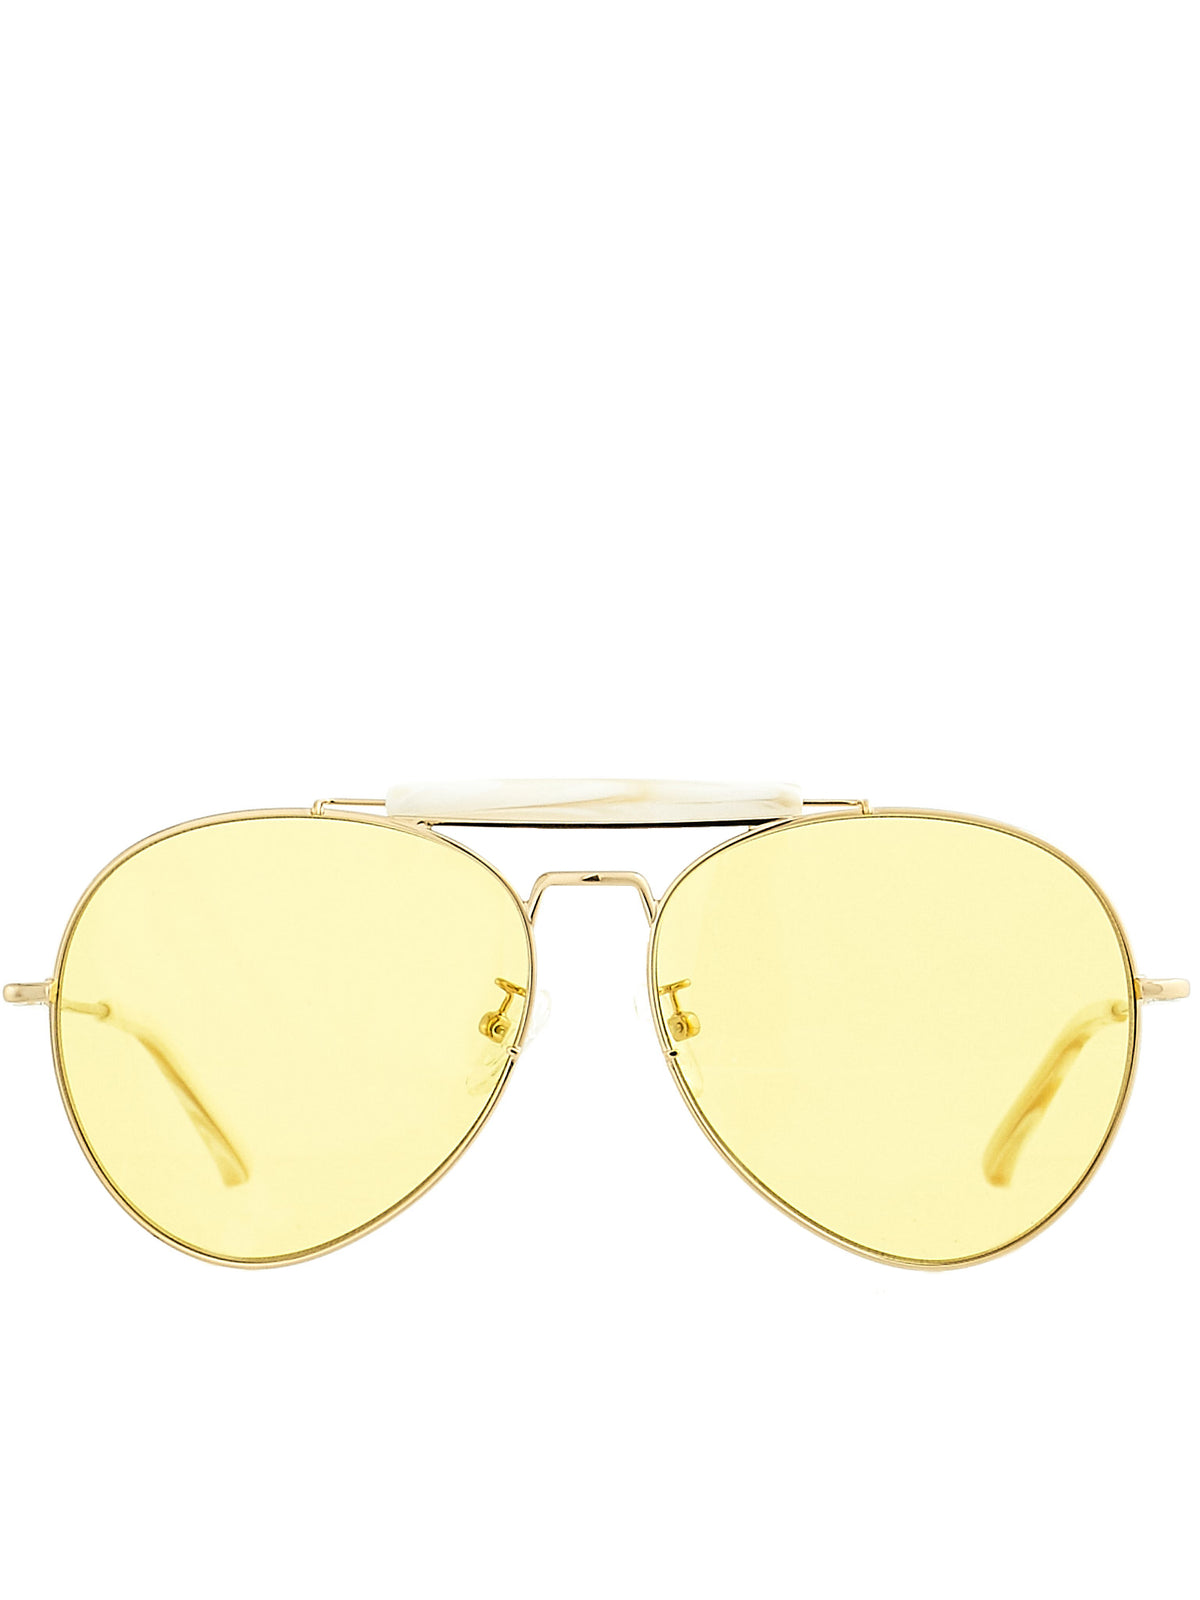 Aviator Sunglasses (DVN187C2SUN-YG-HORN-YELLOW)